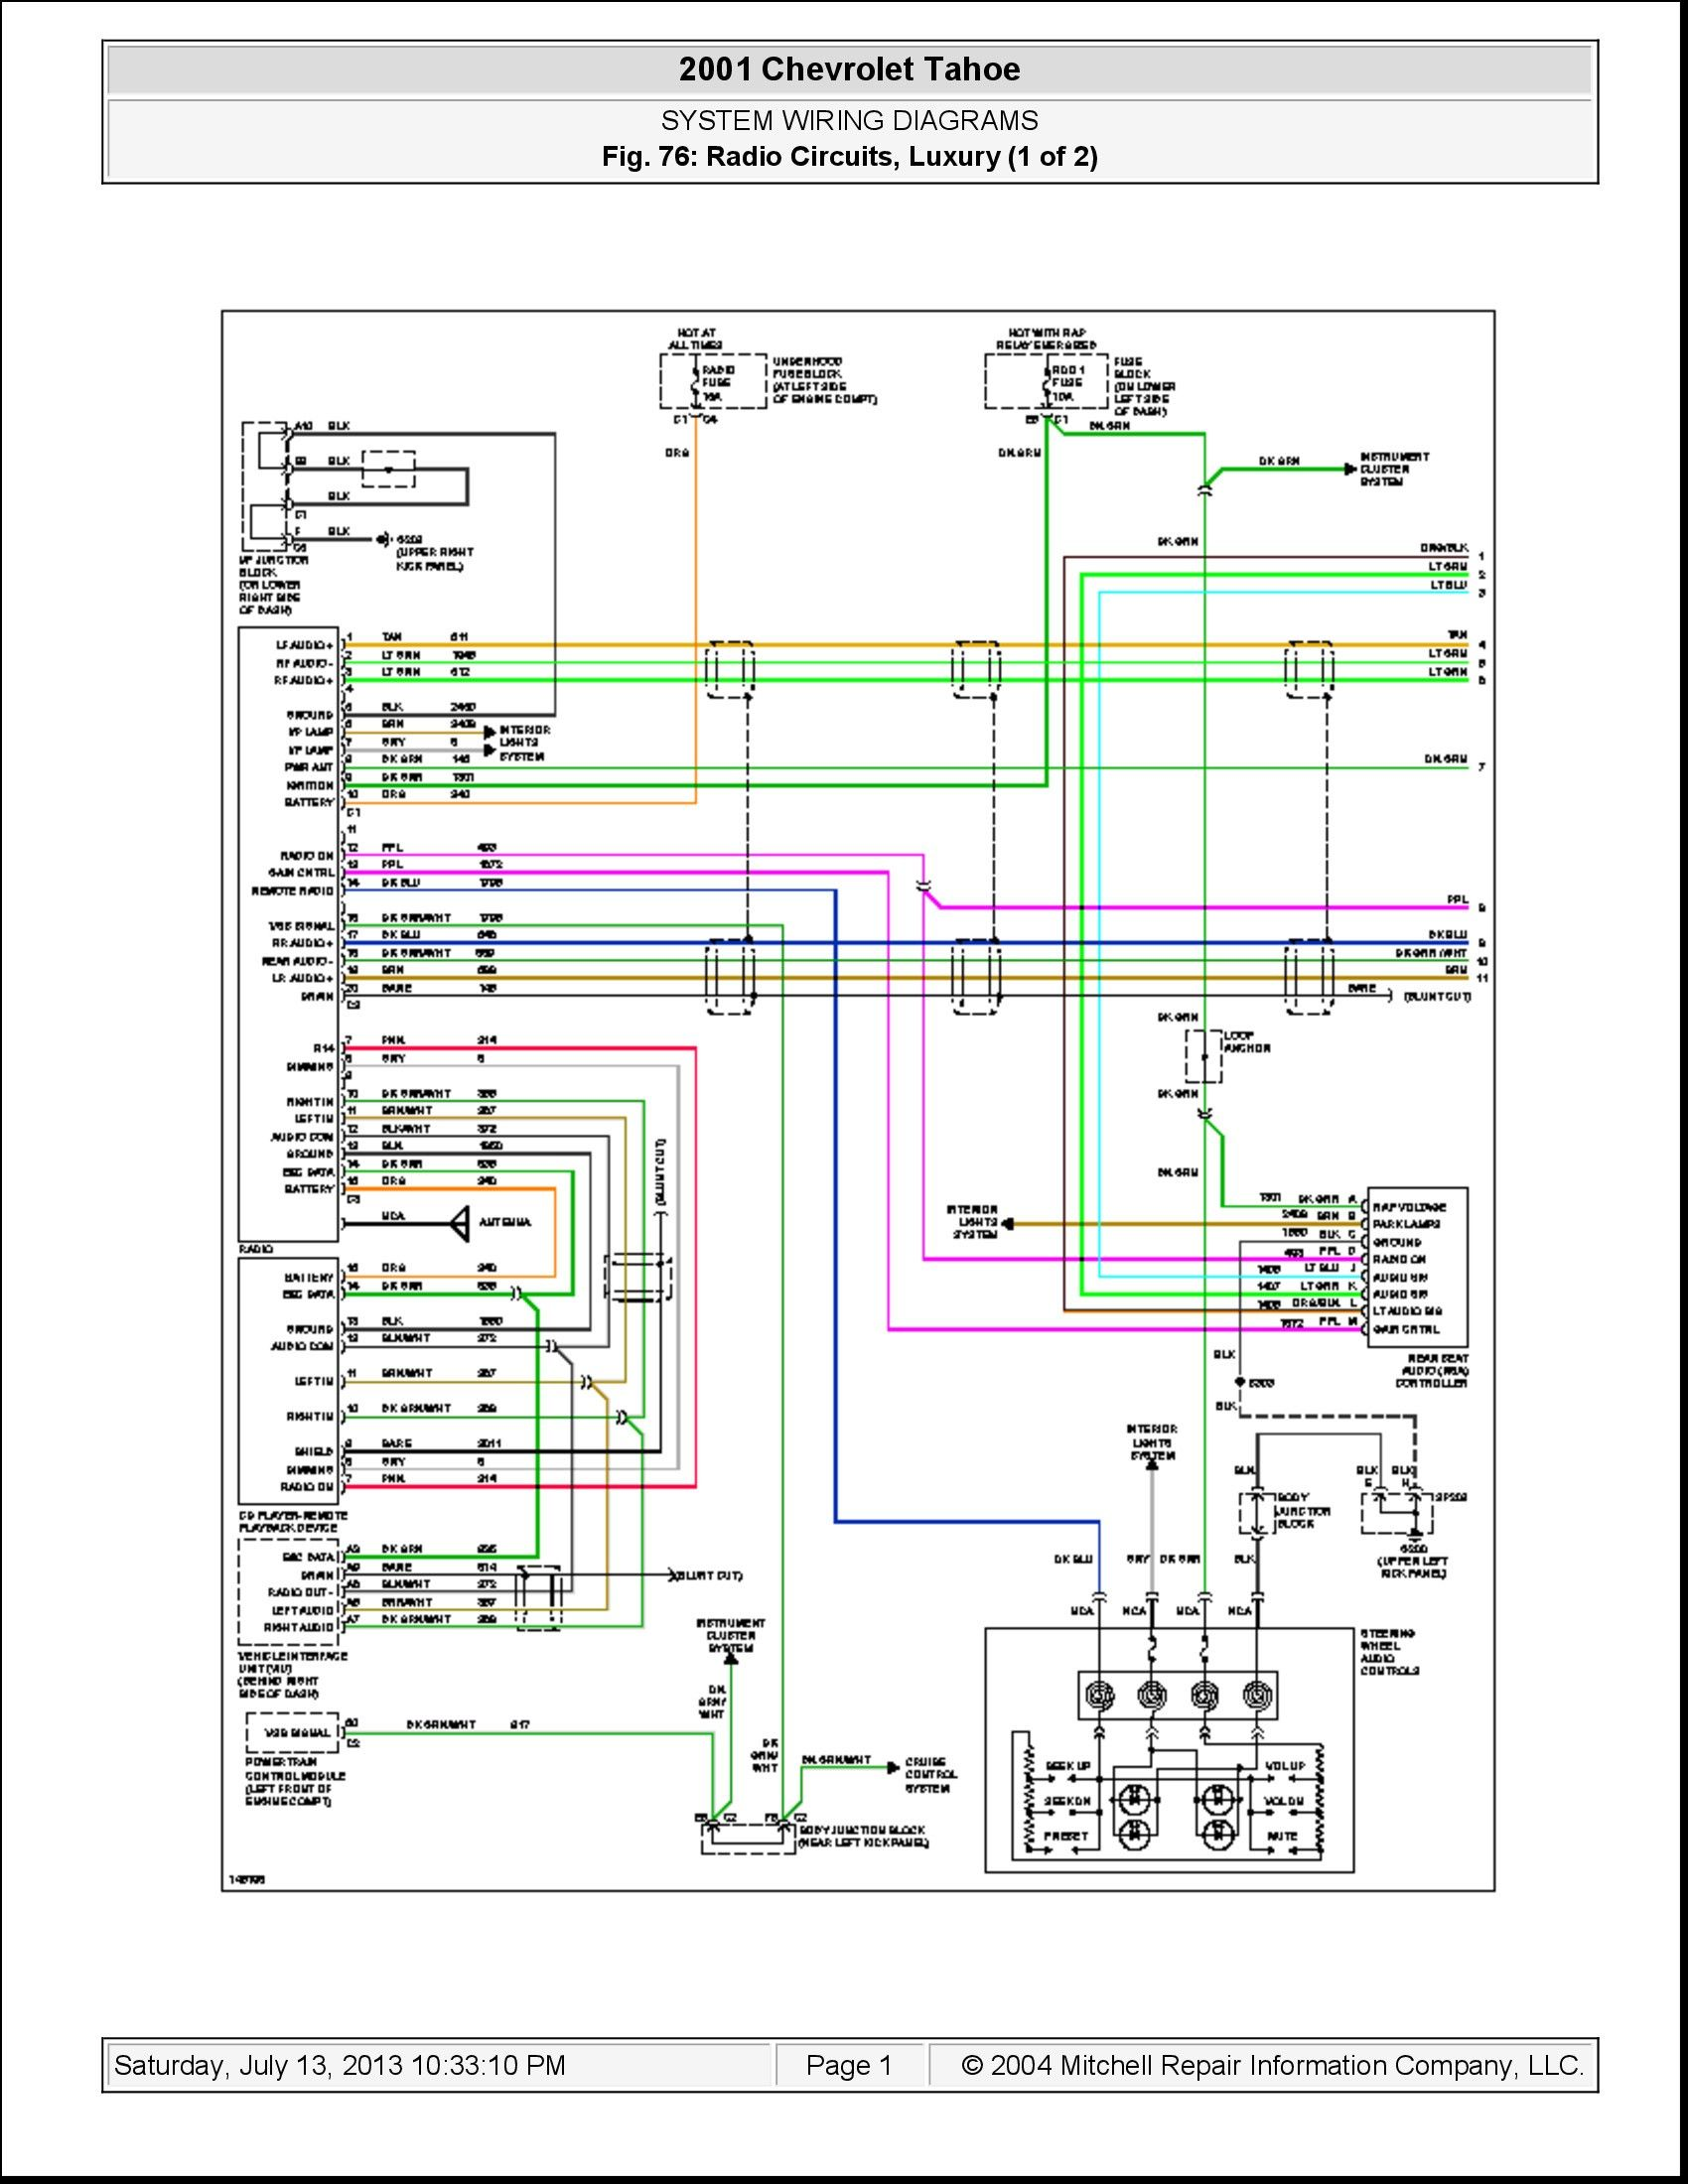 Unique 2000 Chevy Suburban Radio Wiring Diagram In 2020 Chevy Silverado 2003 Chevy Silverado Jeep Grand Cherokee